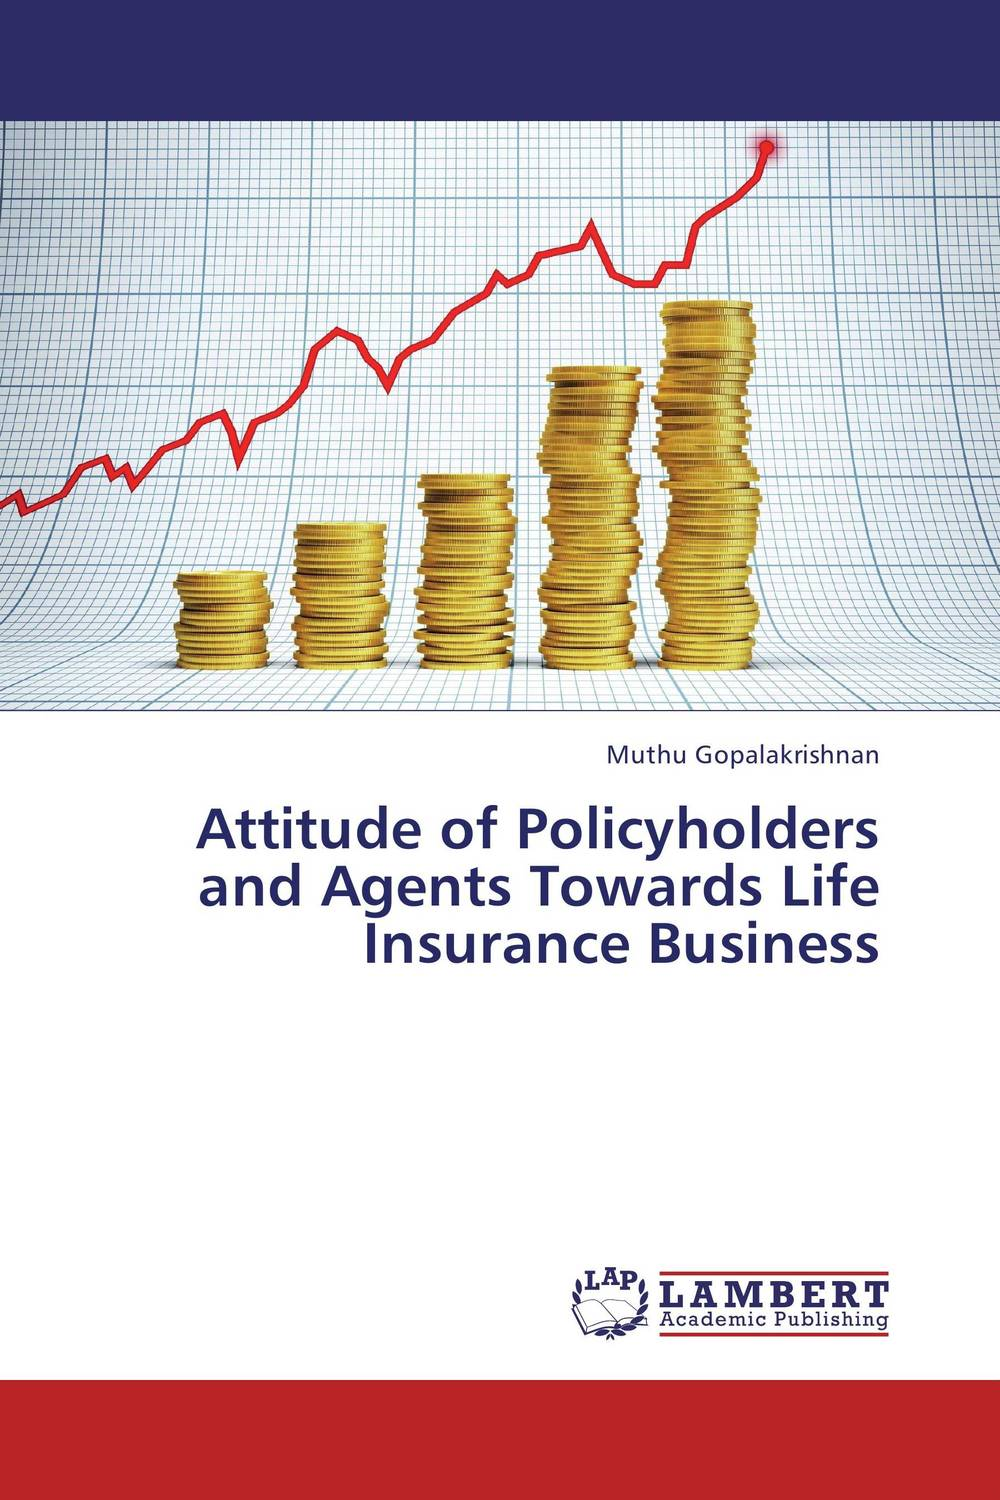 Attitude of Policyholders and Agents Towards Life Insurance Business financial performance analysis of general insurance companies in india